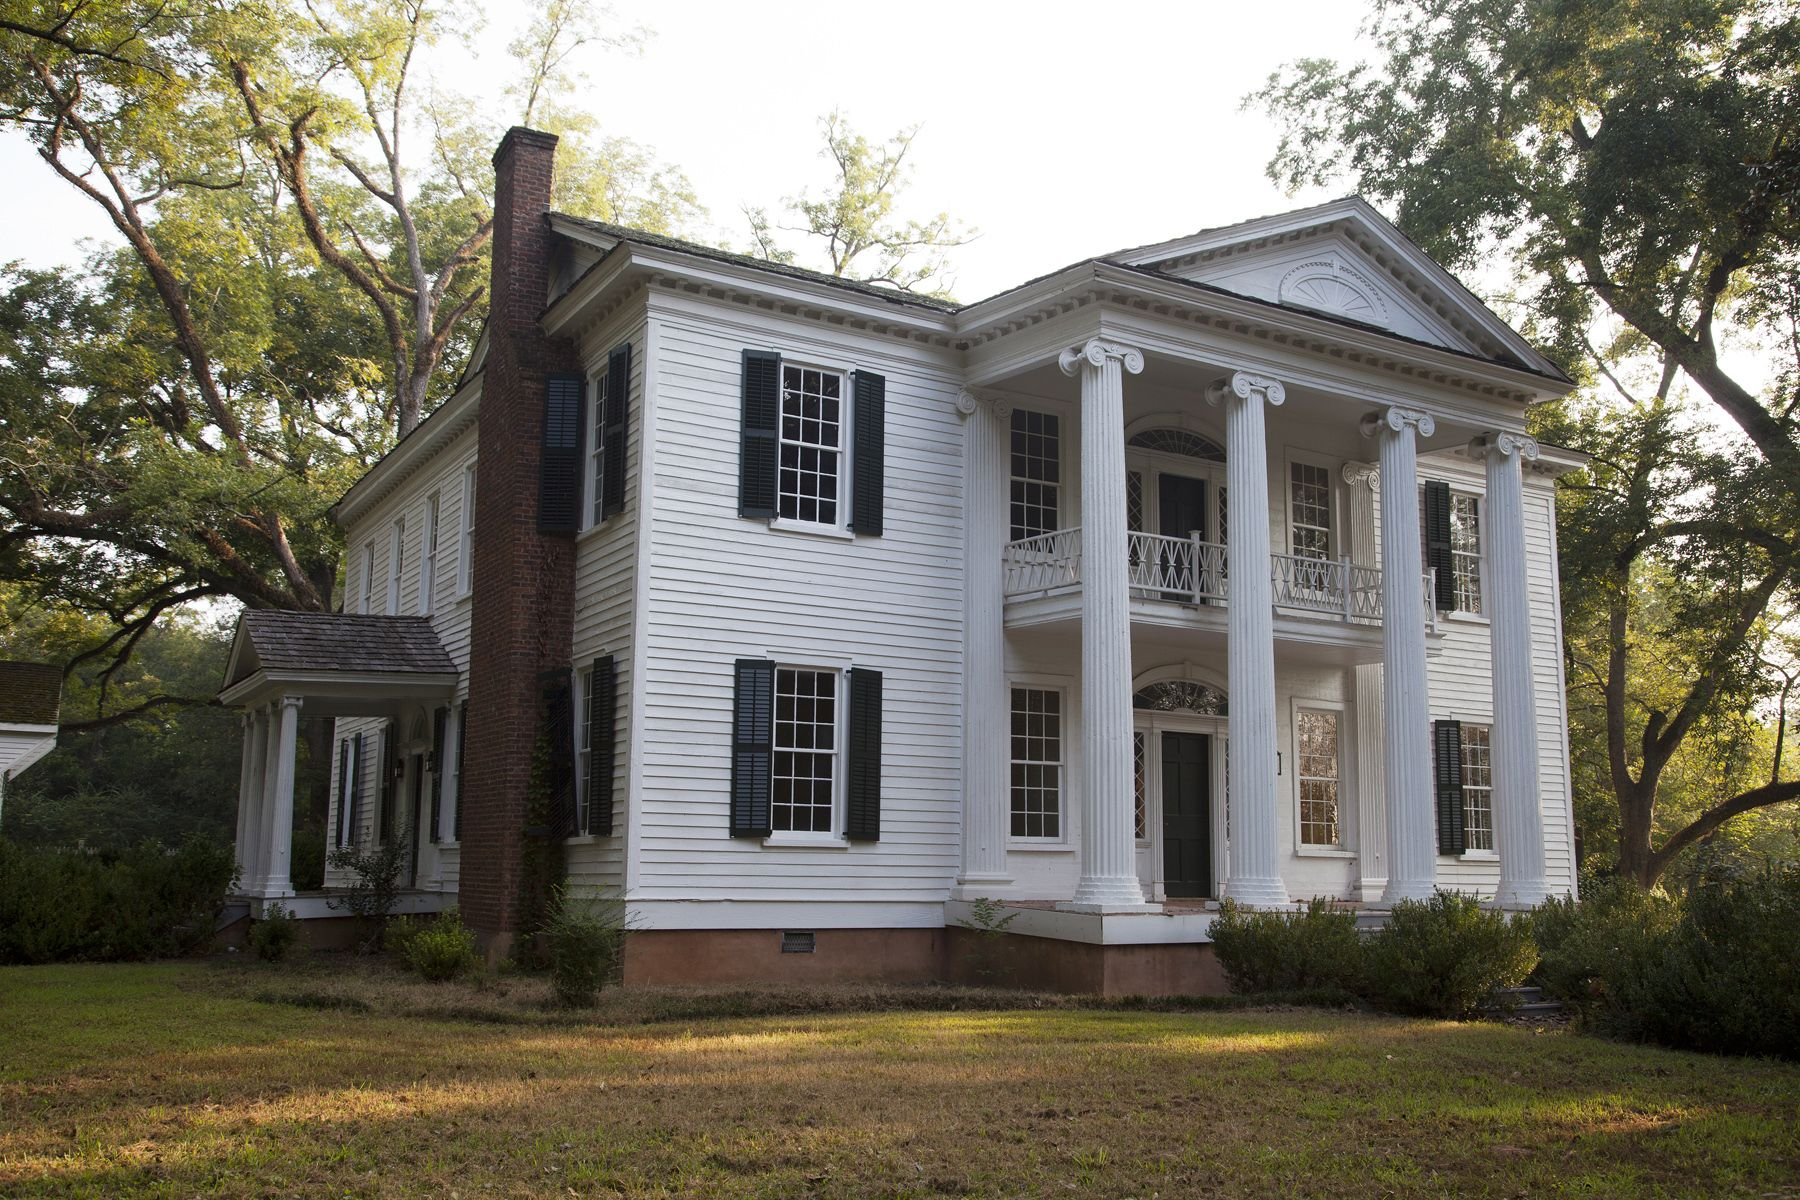 Nutwood Troup County A house in trouble